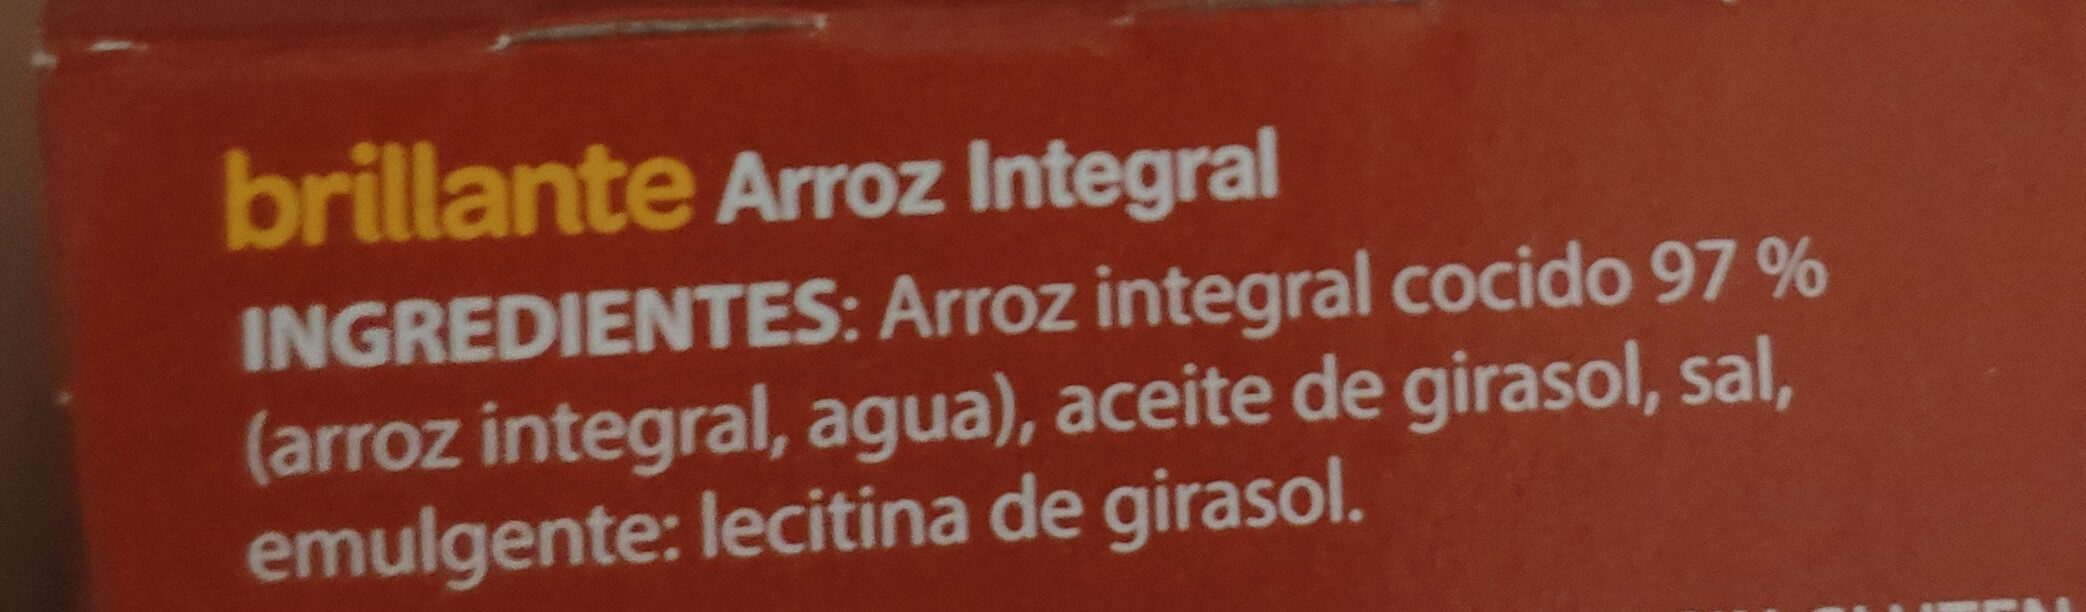 Brillante Arroz integral - Ingrédients - es